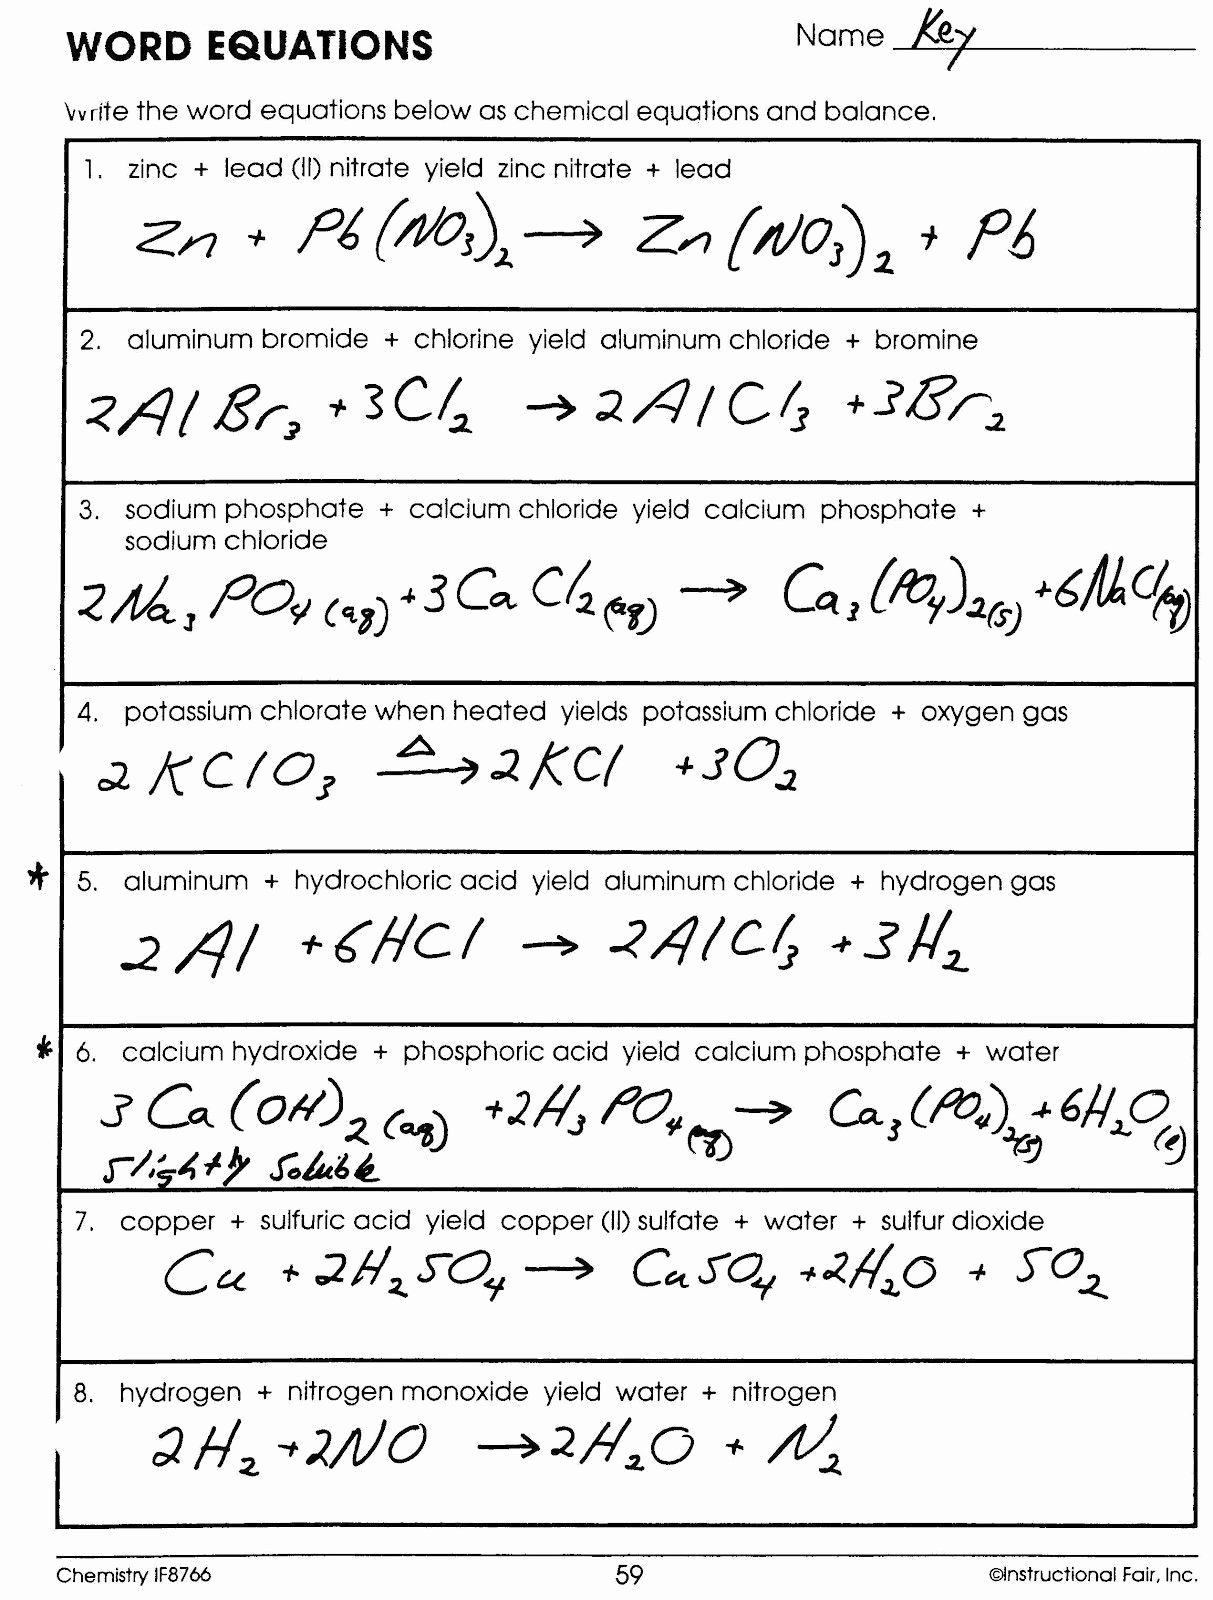 Exponential Function Word Problems Worksheet Awesome Exponential Word Problems Worksheet